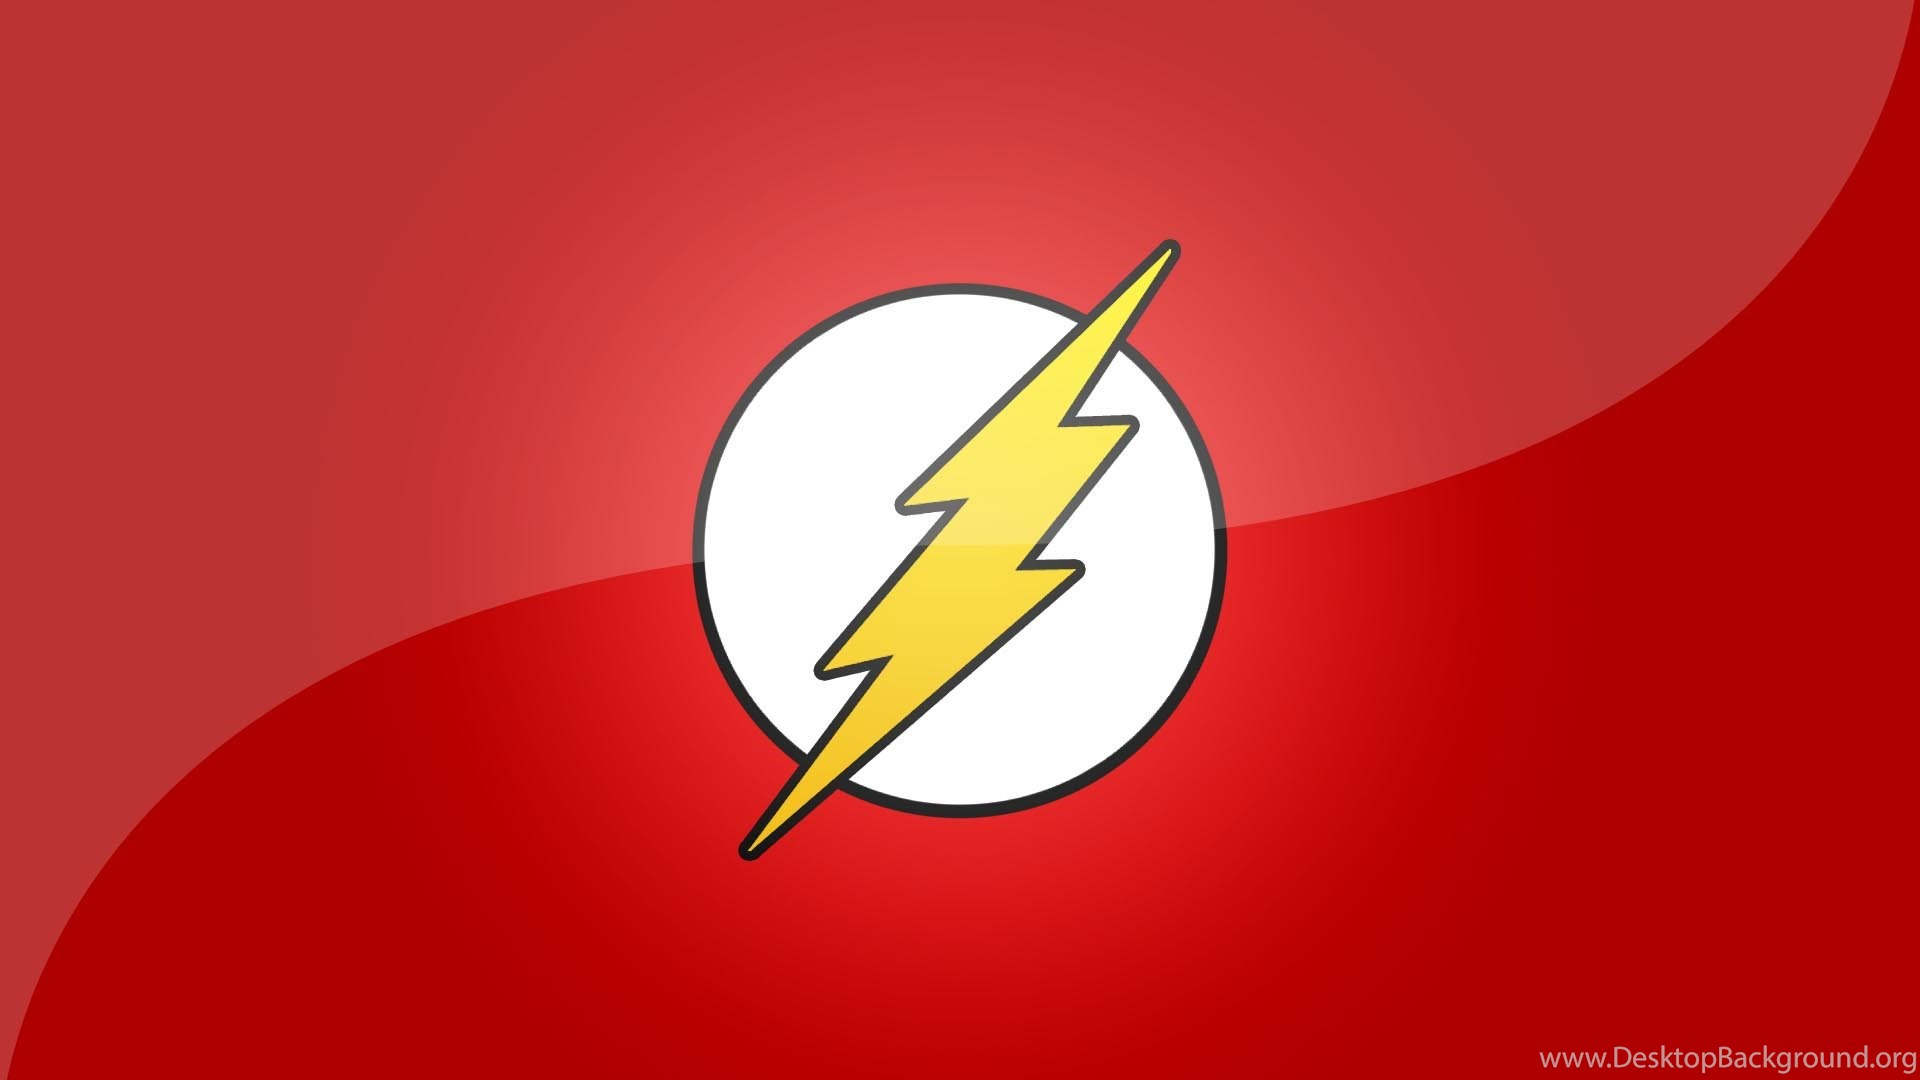 Wallpapers The Flash Symbol Hd 1920x1080 Desktop Background